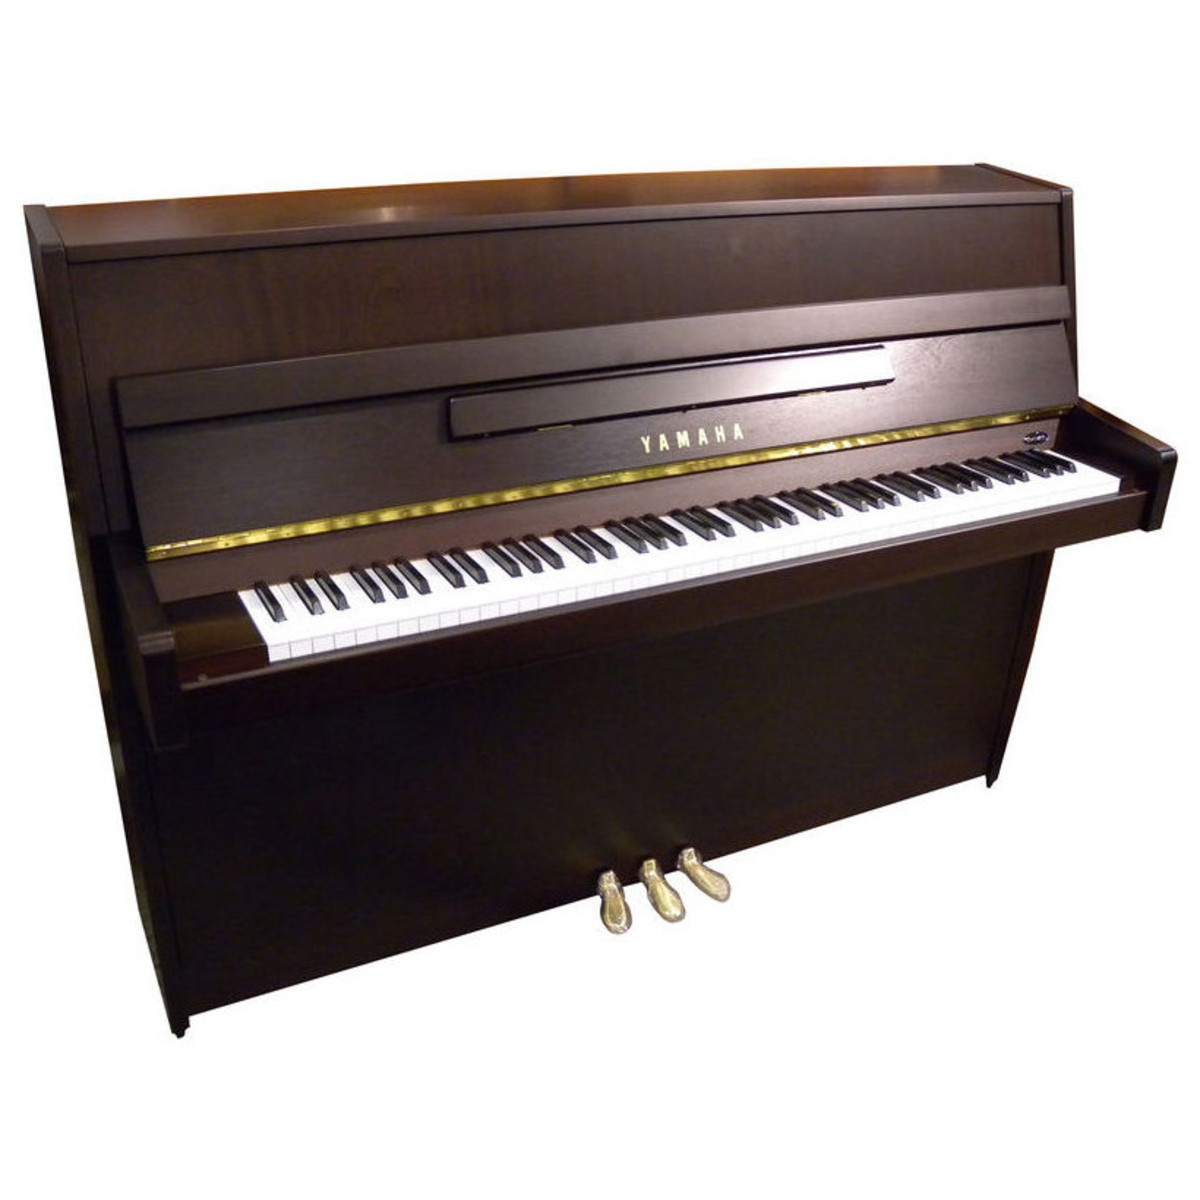 Offlineyamaha b1 upright acoustic piano dark walnut satin for Yamaha b series piano